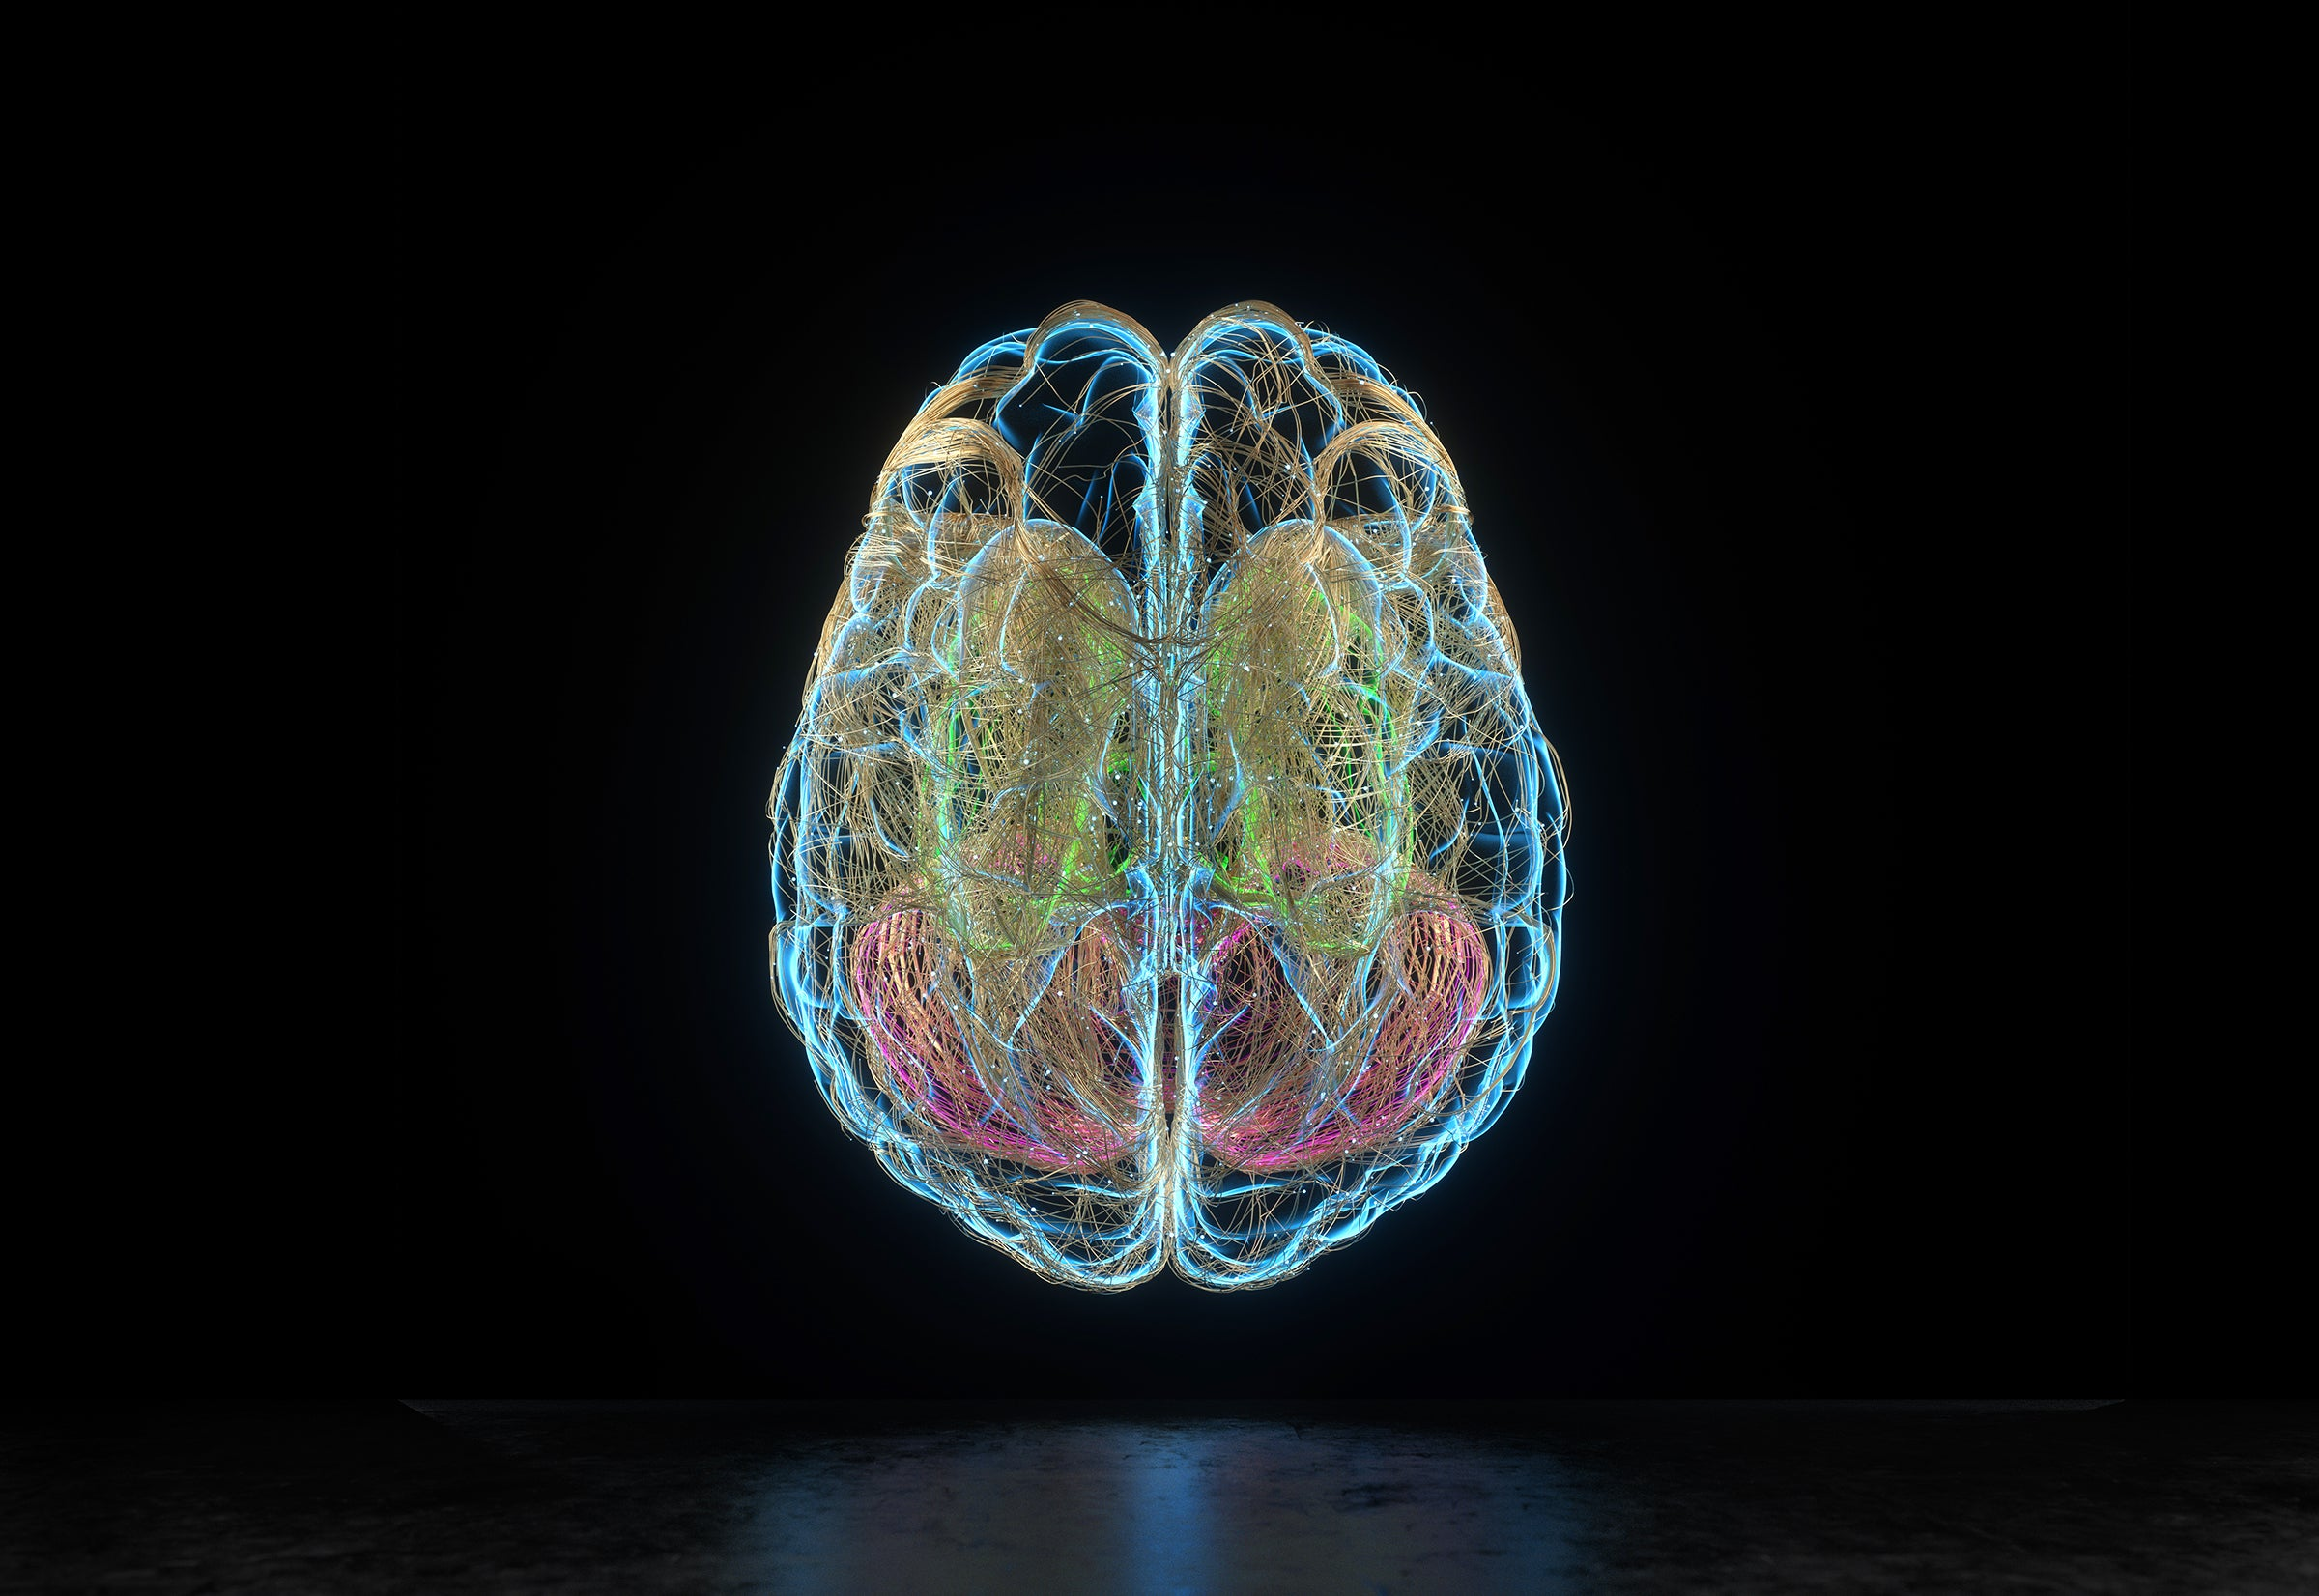 Brain Sides Both Busy In New Language Learning